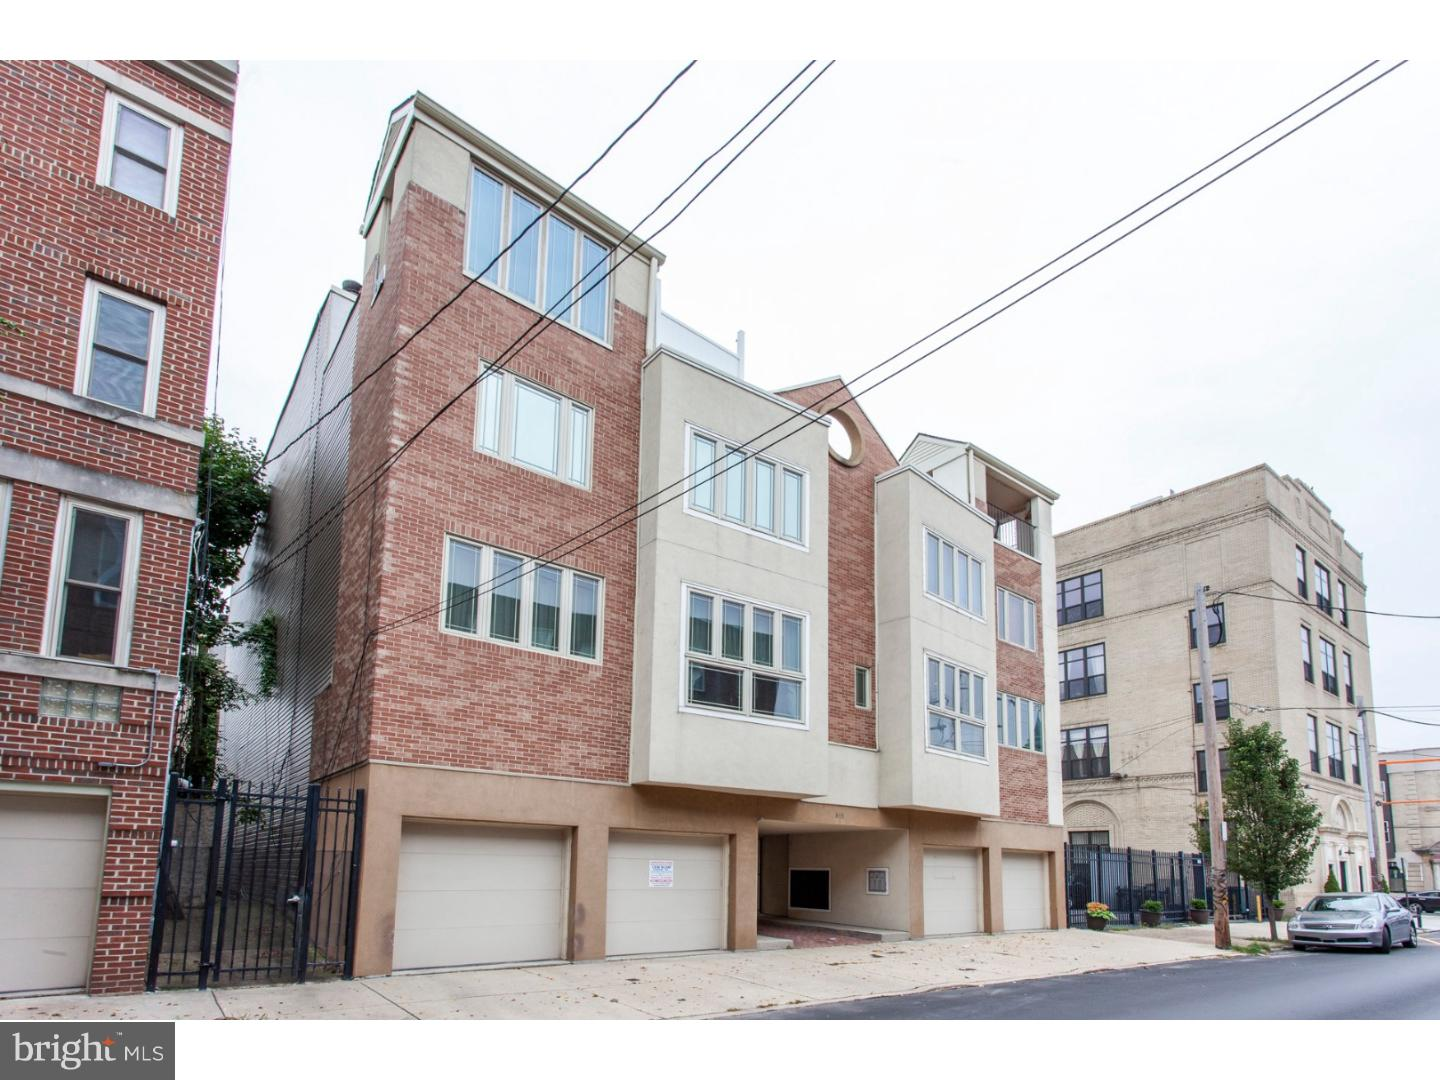 815 S 7TH Street #3 Philadelphia, PA 19147